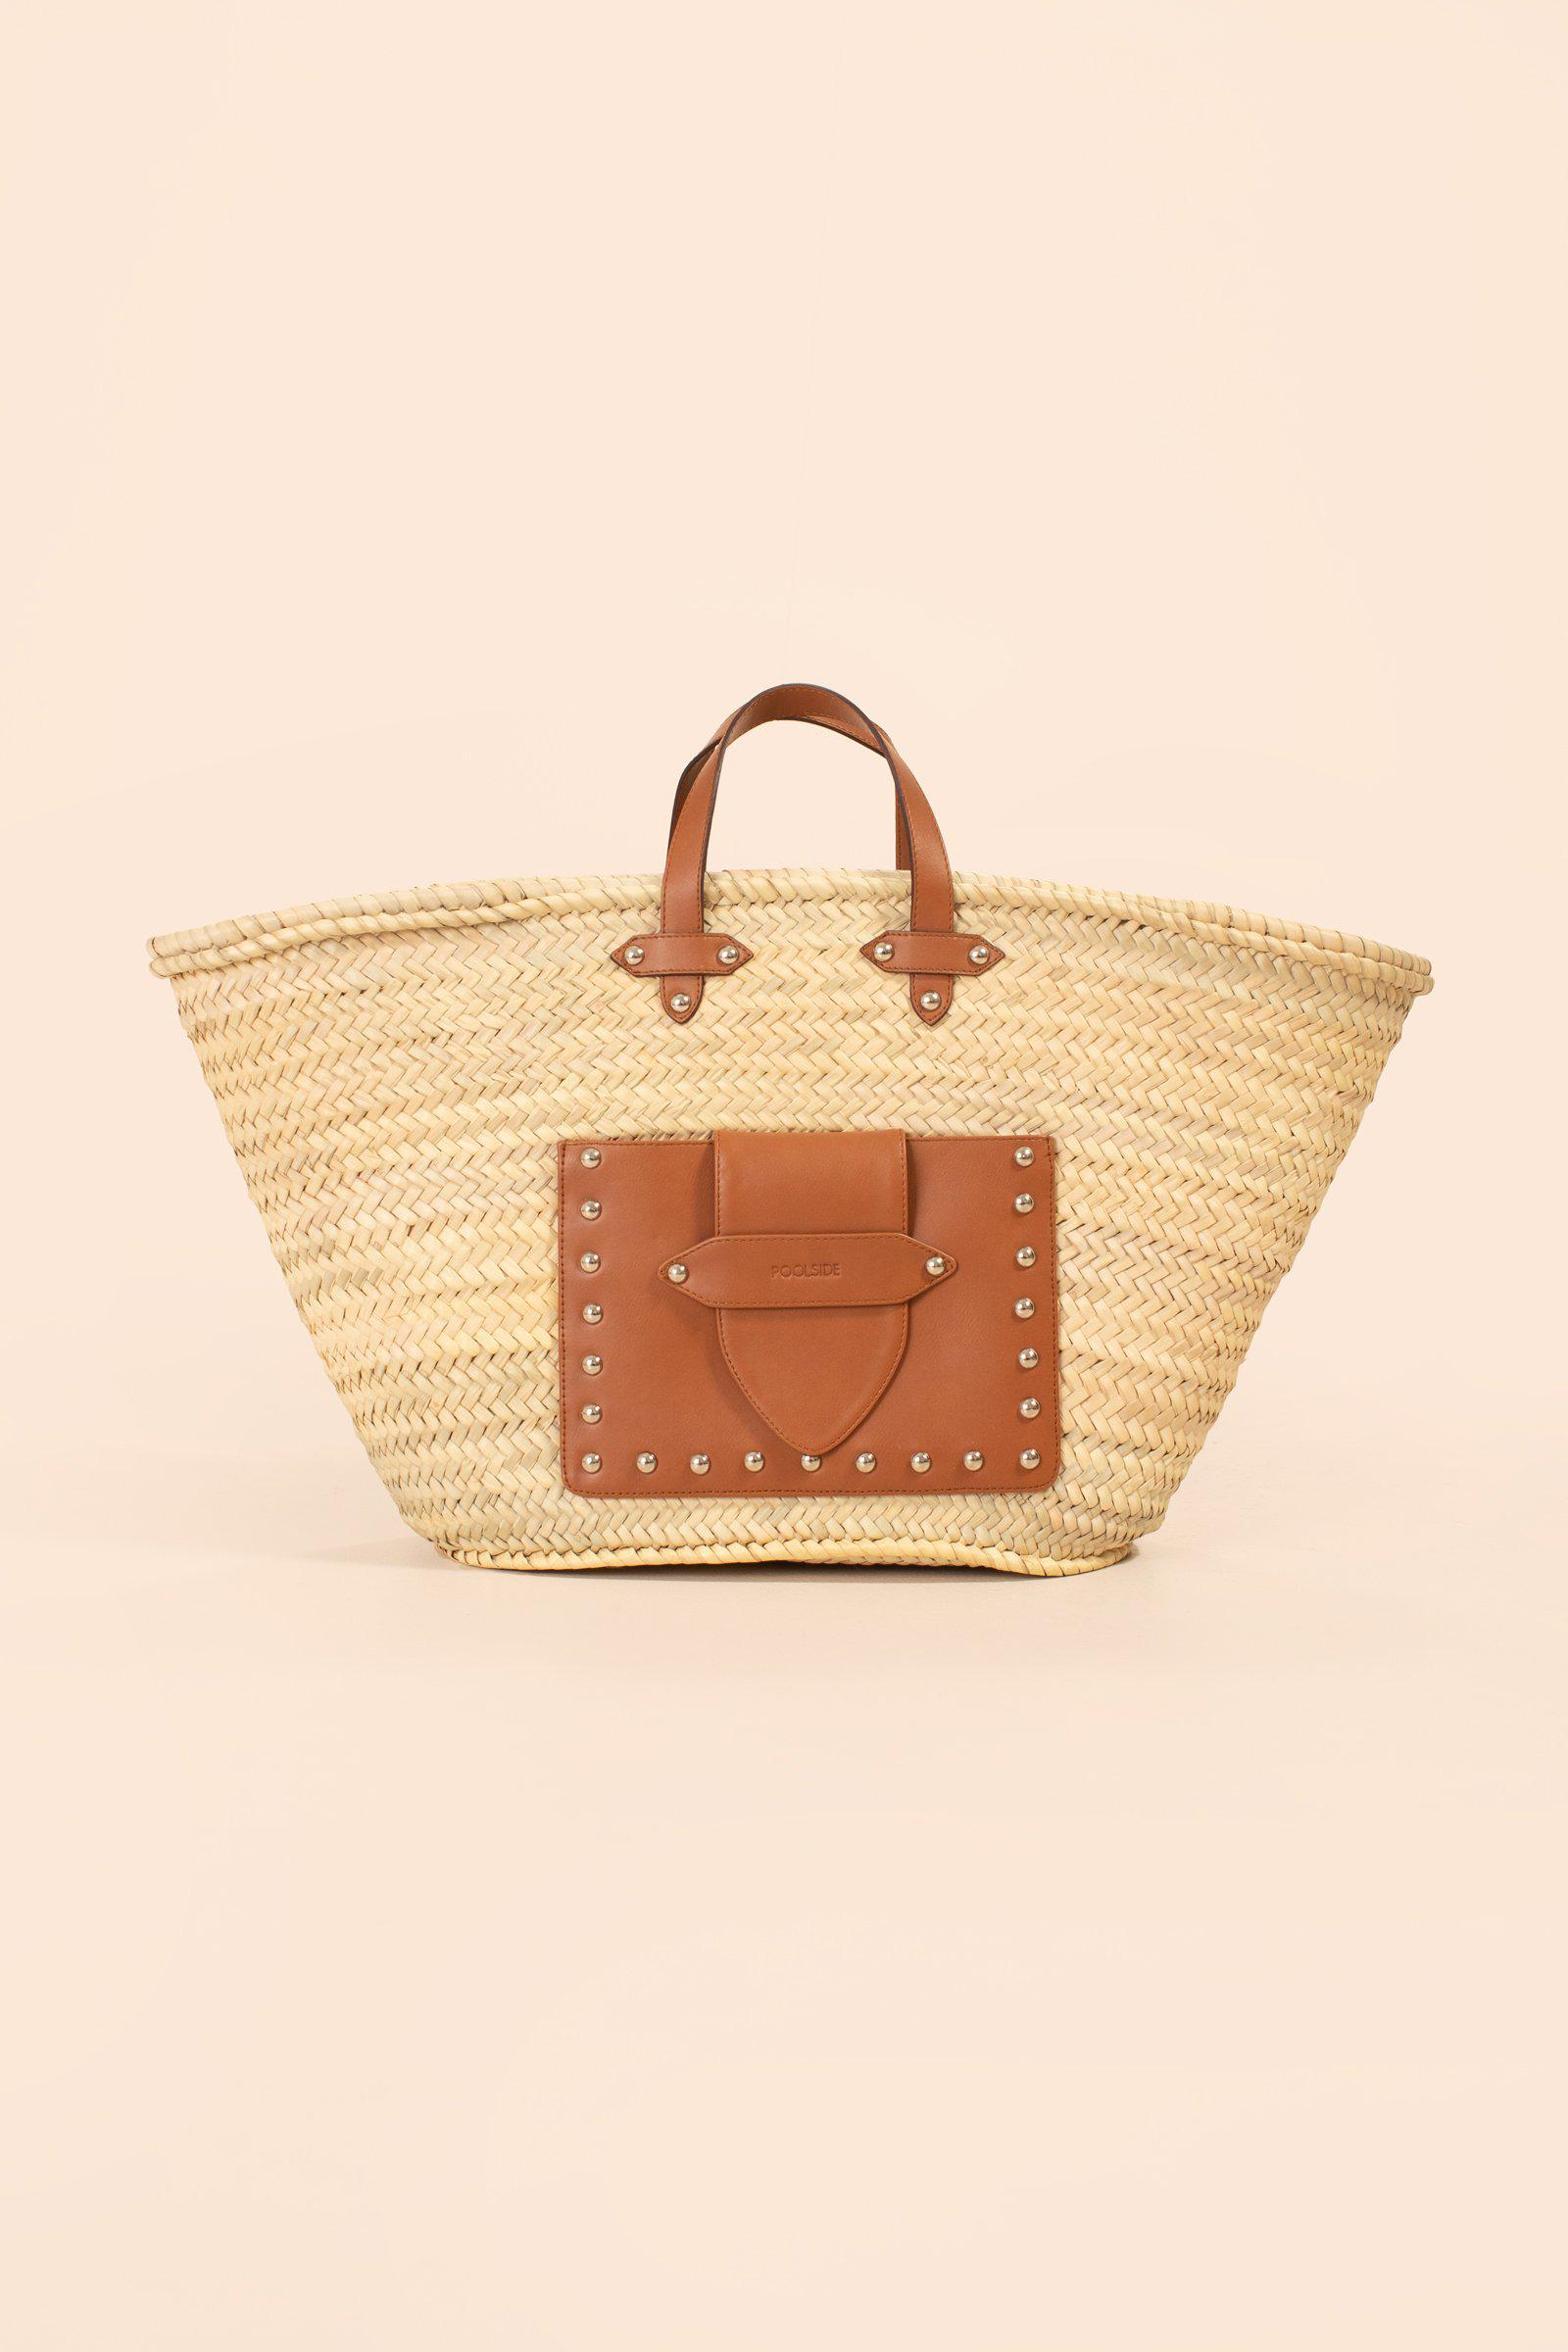 MOROCCAN STUDDED TOTE